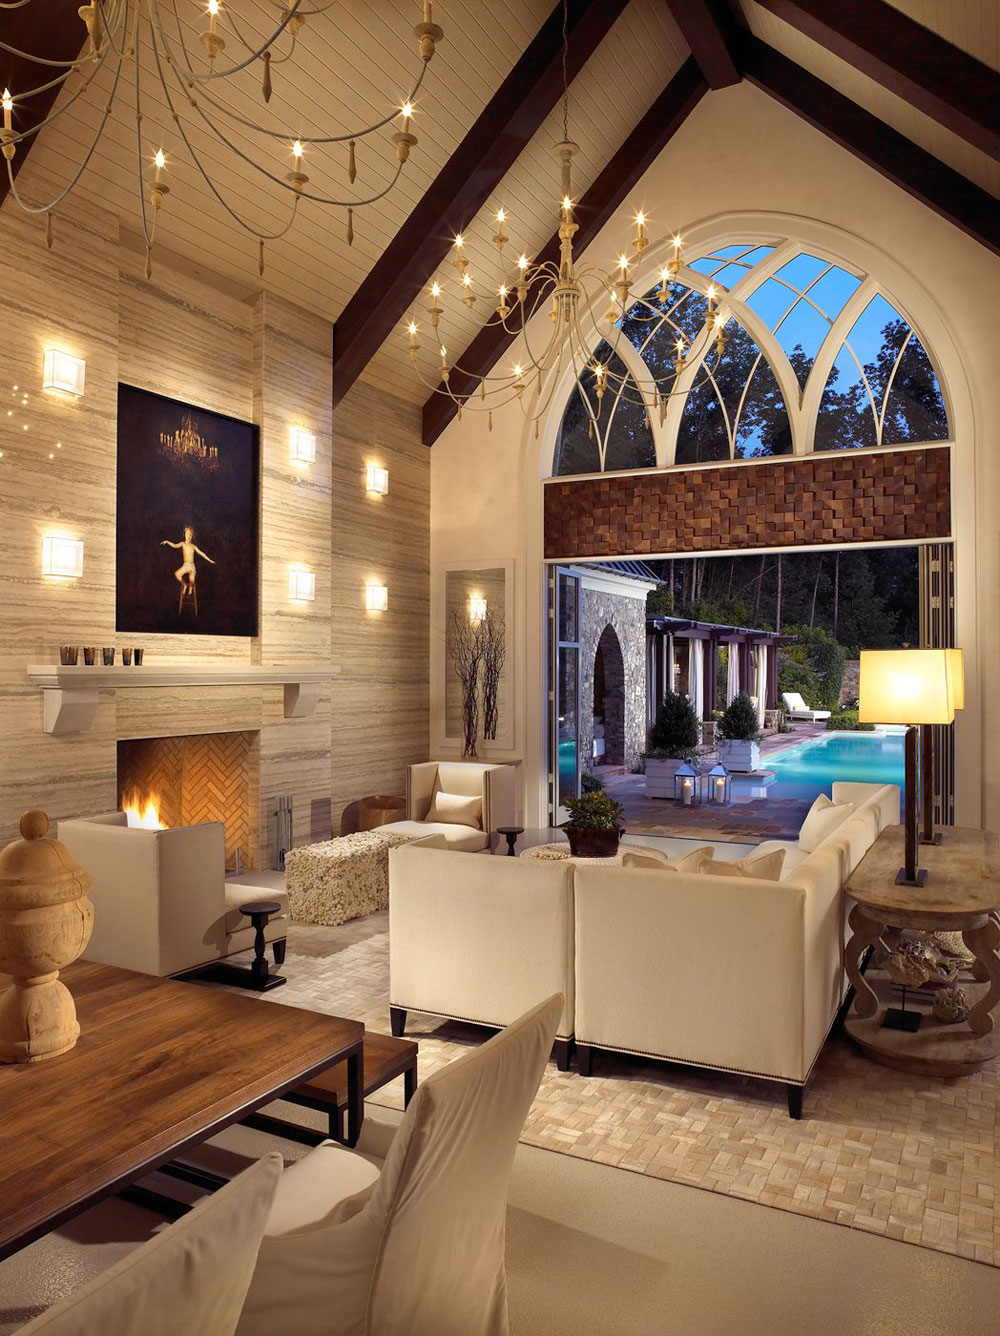 Contemporary Ceiling Designs For Living Room: Designs Of How Vaulted Ceilings Top Off Any Room With Style